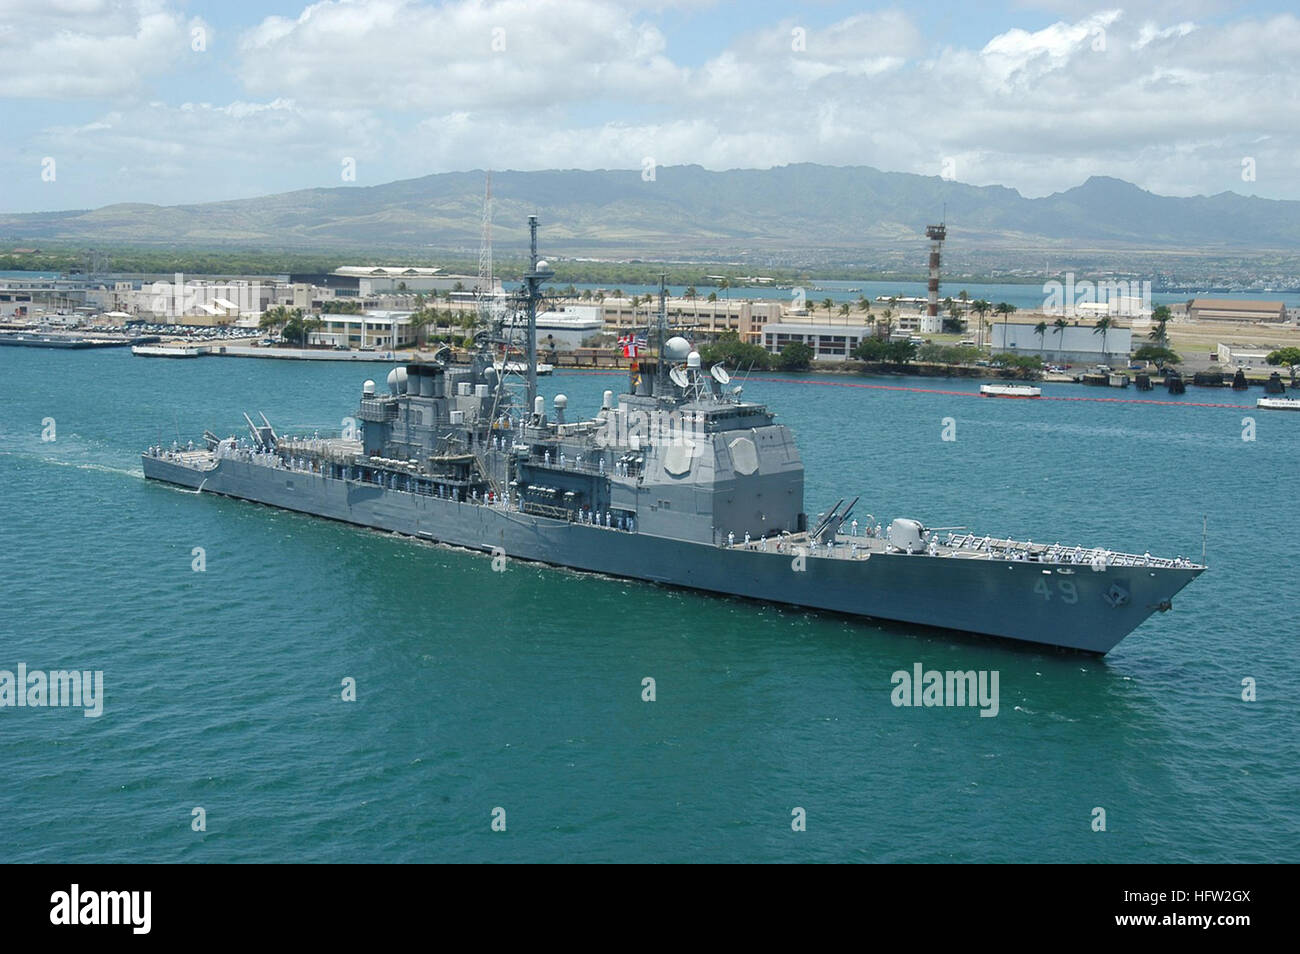 050415-N-8157F-104 Pearl Harbor, Hawaii (April 15, 2005)...The USS Vincennes(CG 49) passes Ford Island as it arrives - Stock Image